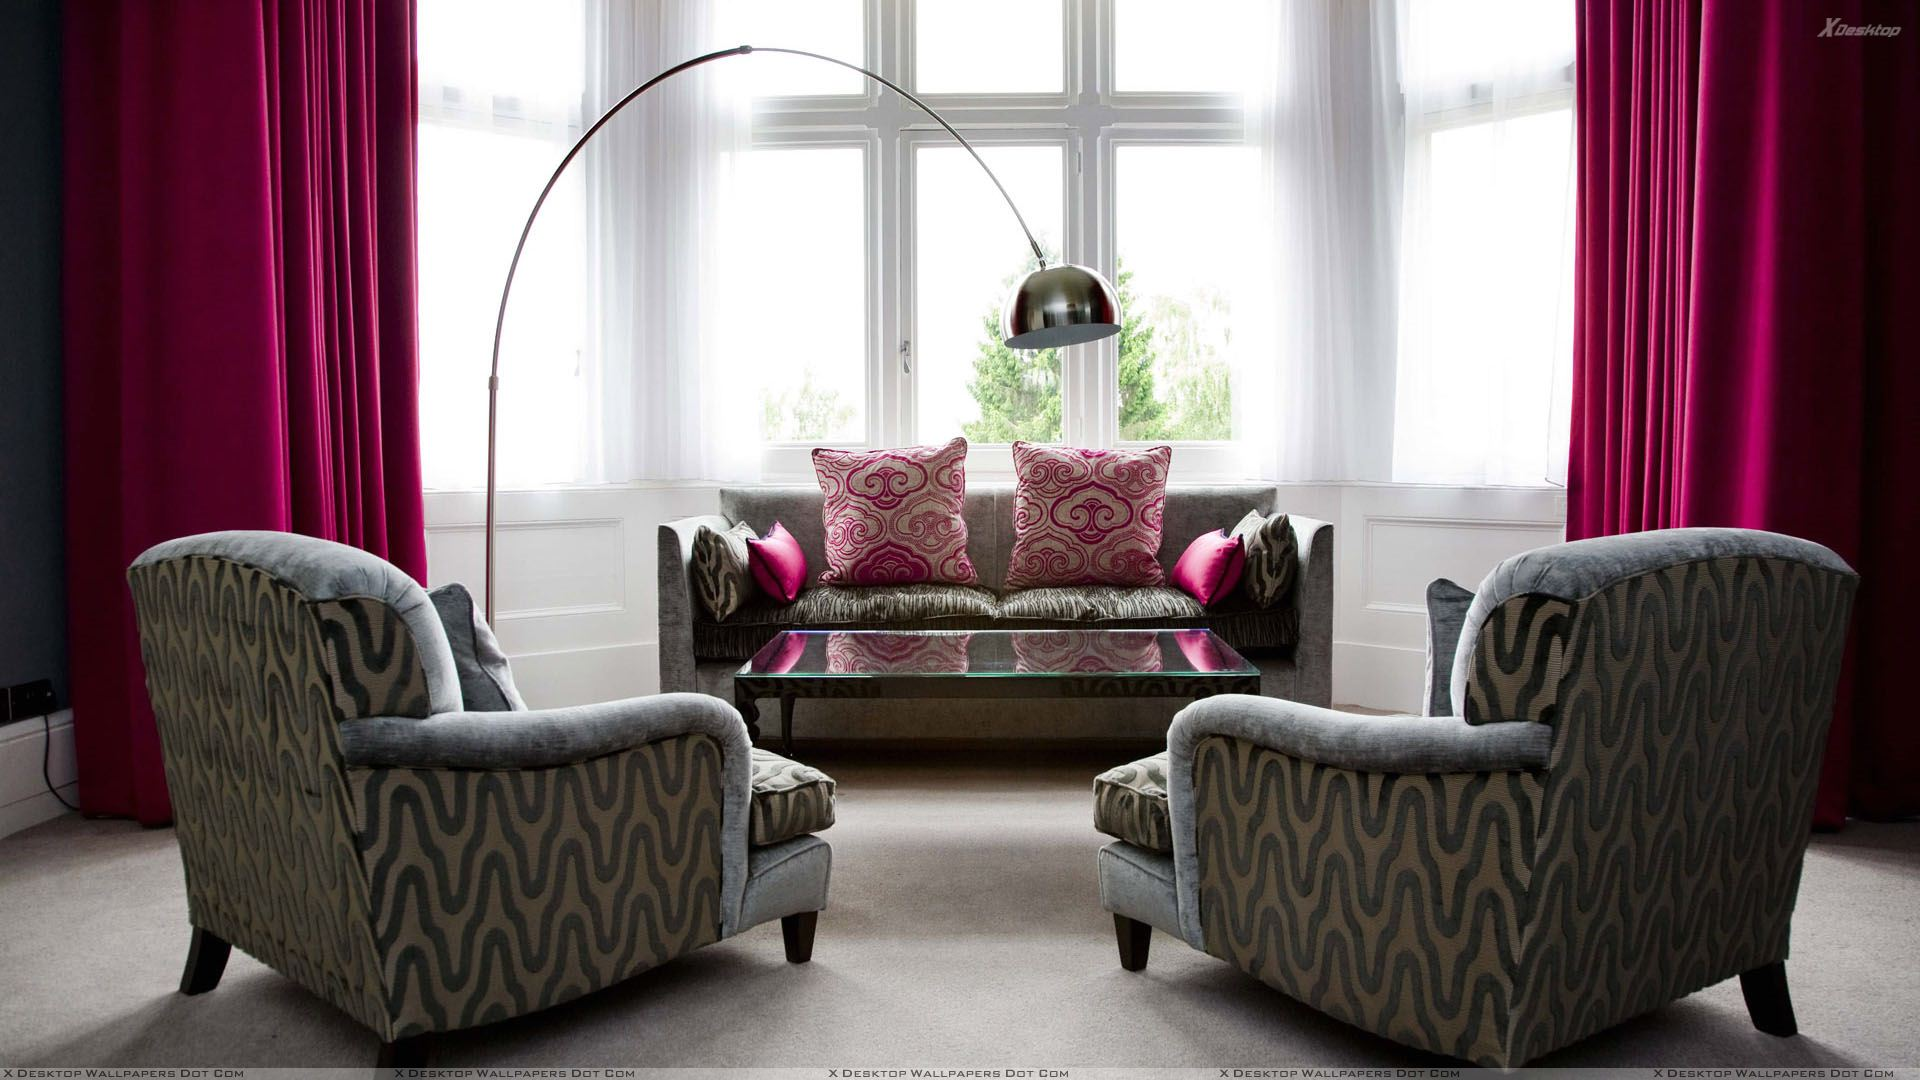 Grey designing sofa set and pink curtains in room wallpaper Red and grey sofa